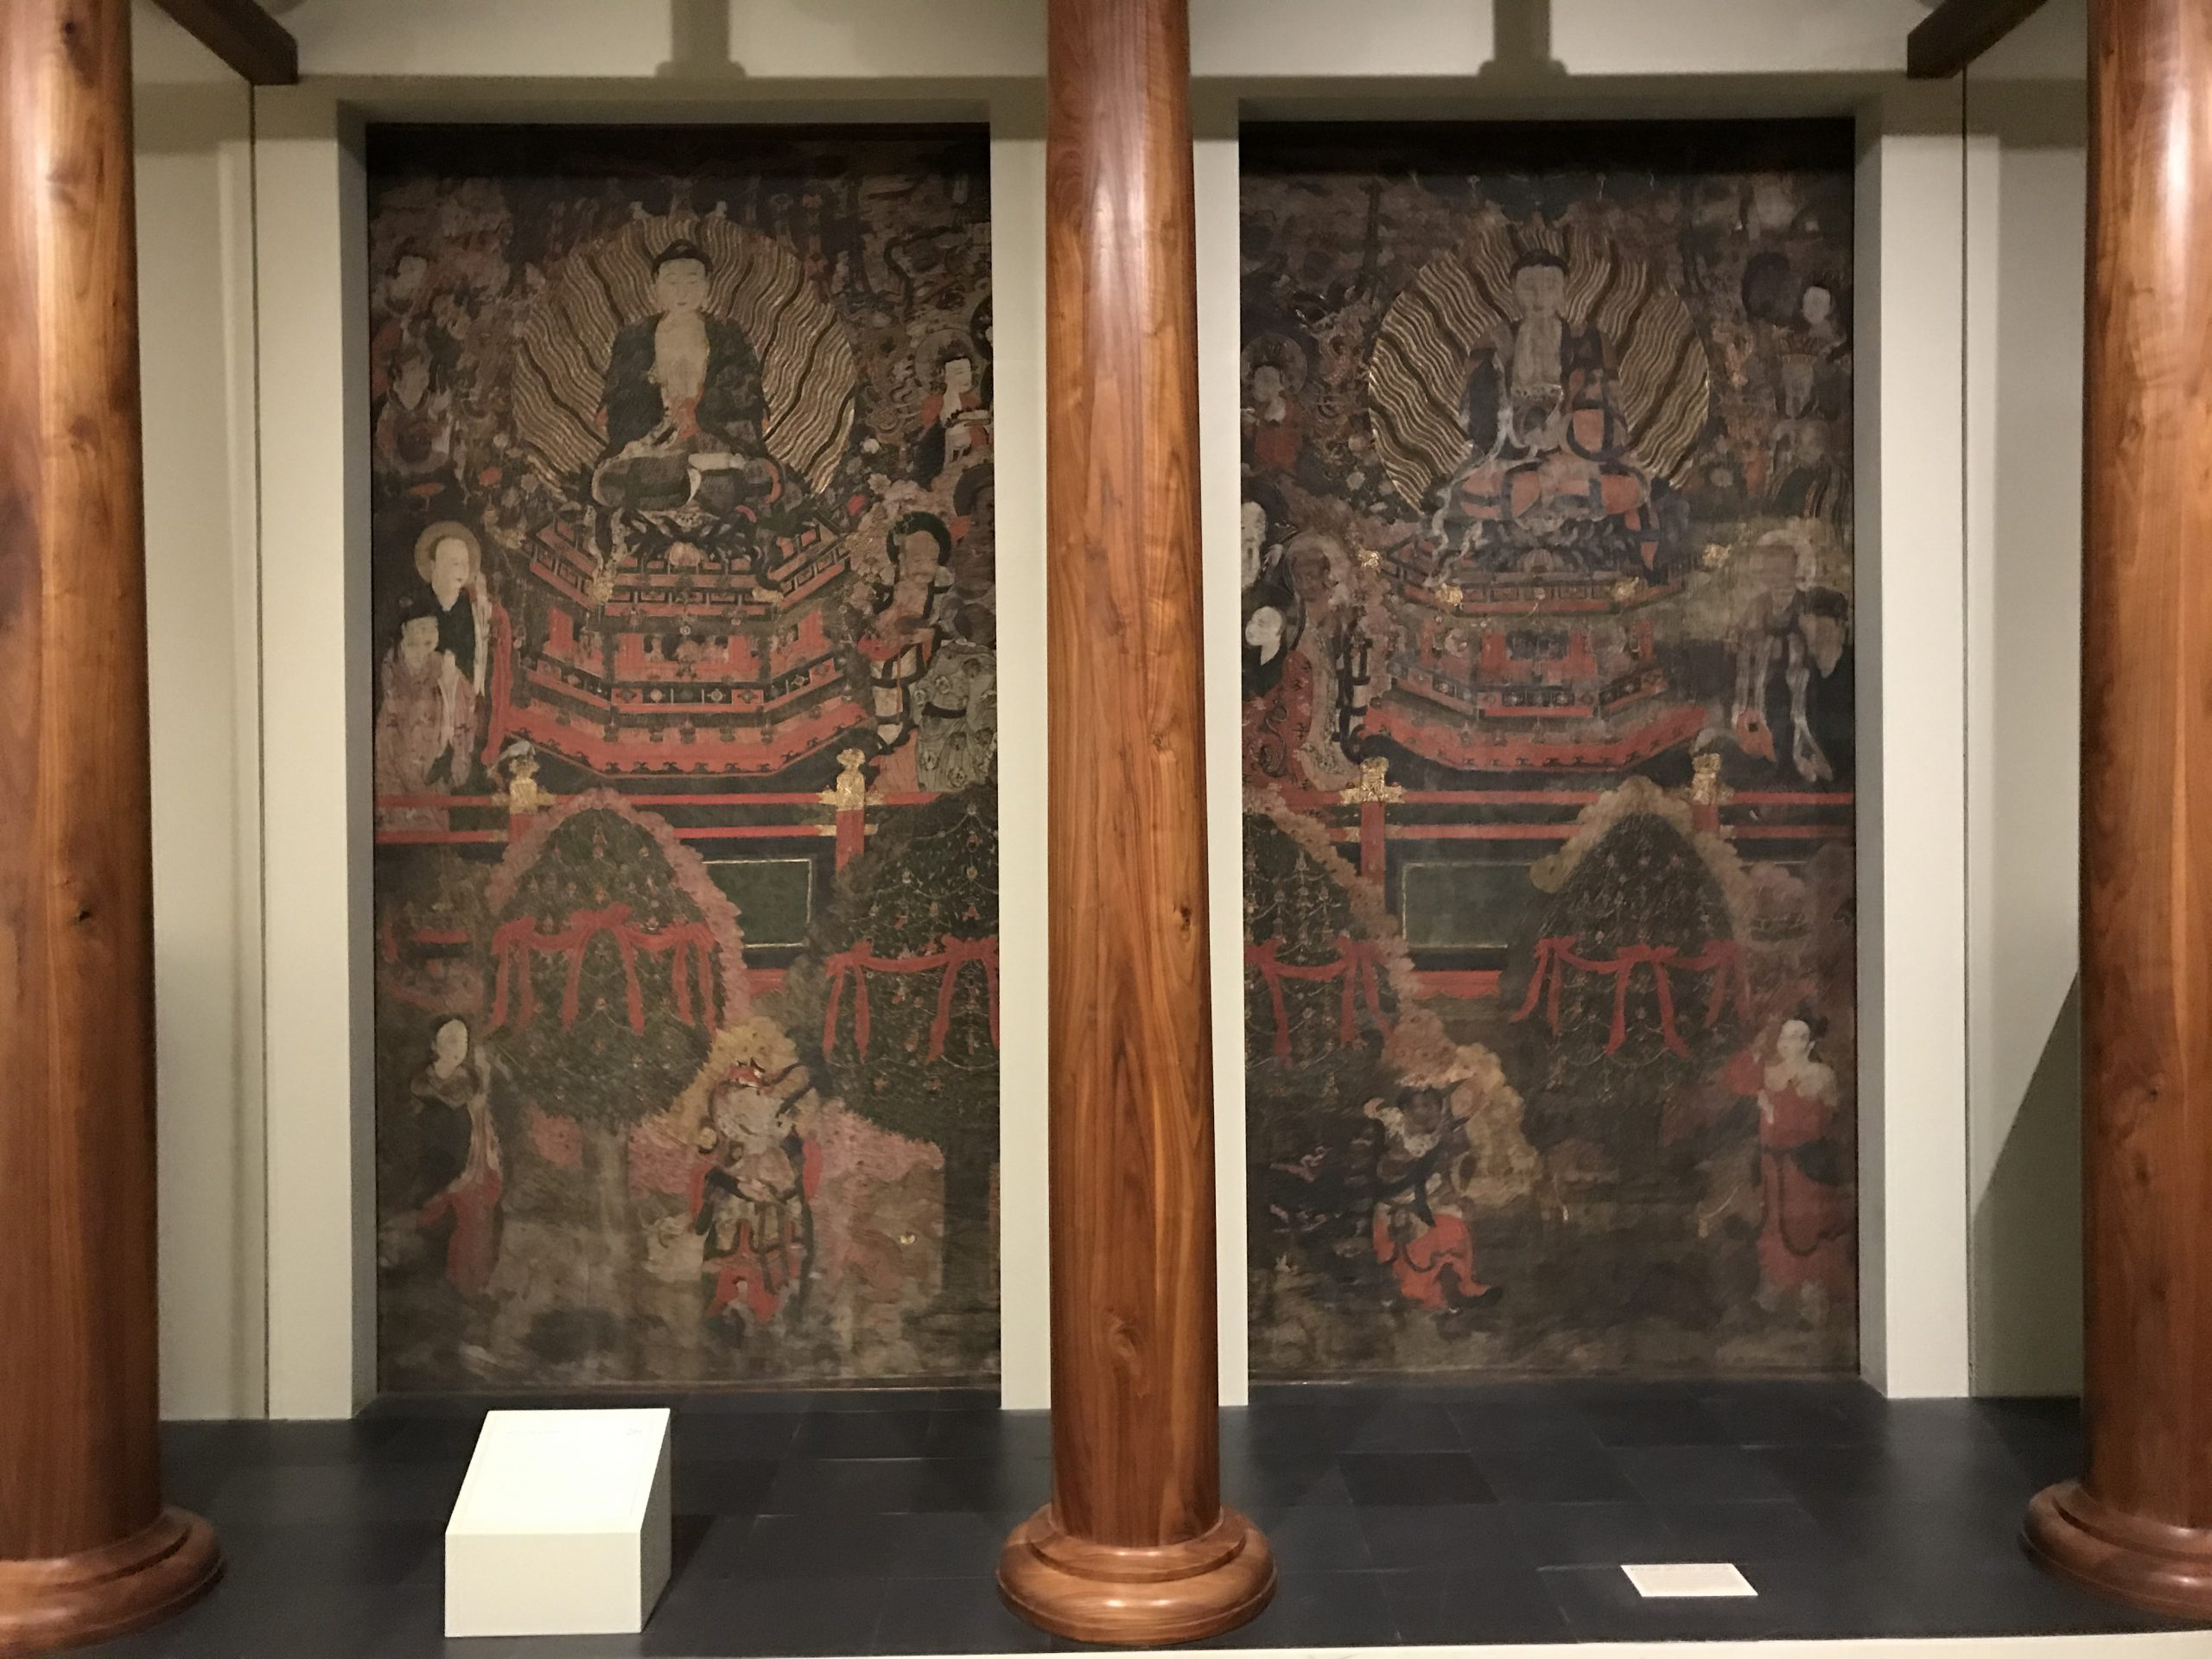 The Curious Curator – Unlocking the Mystery of the BMA's Temple Murals: Part 2